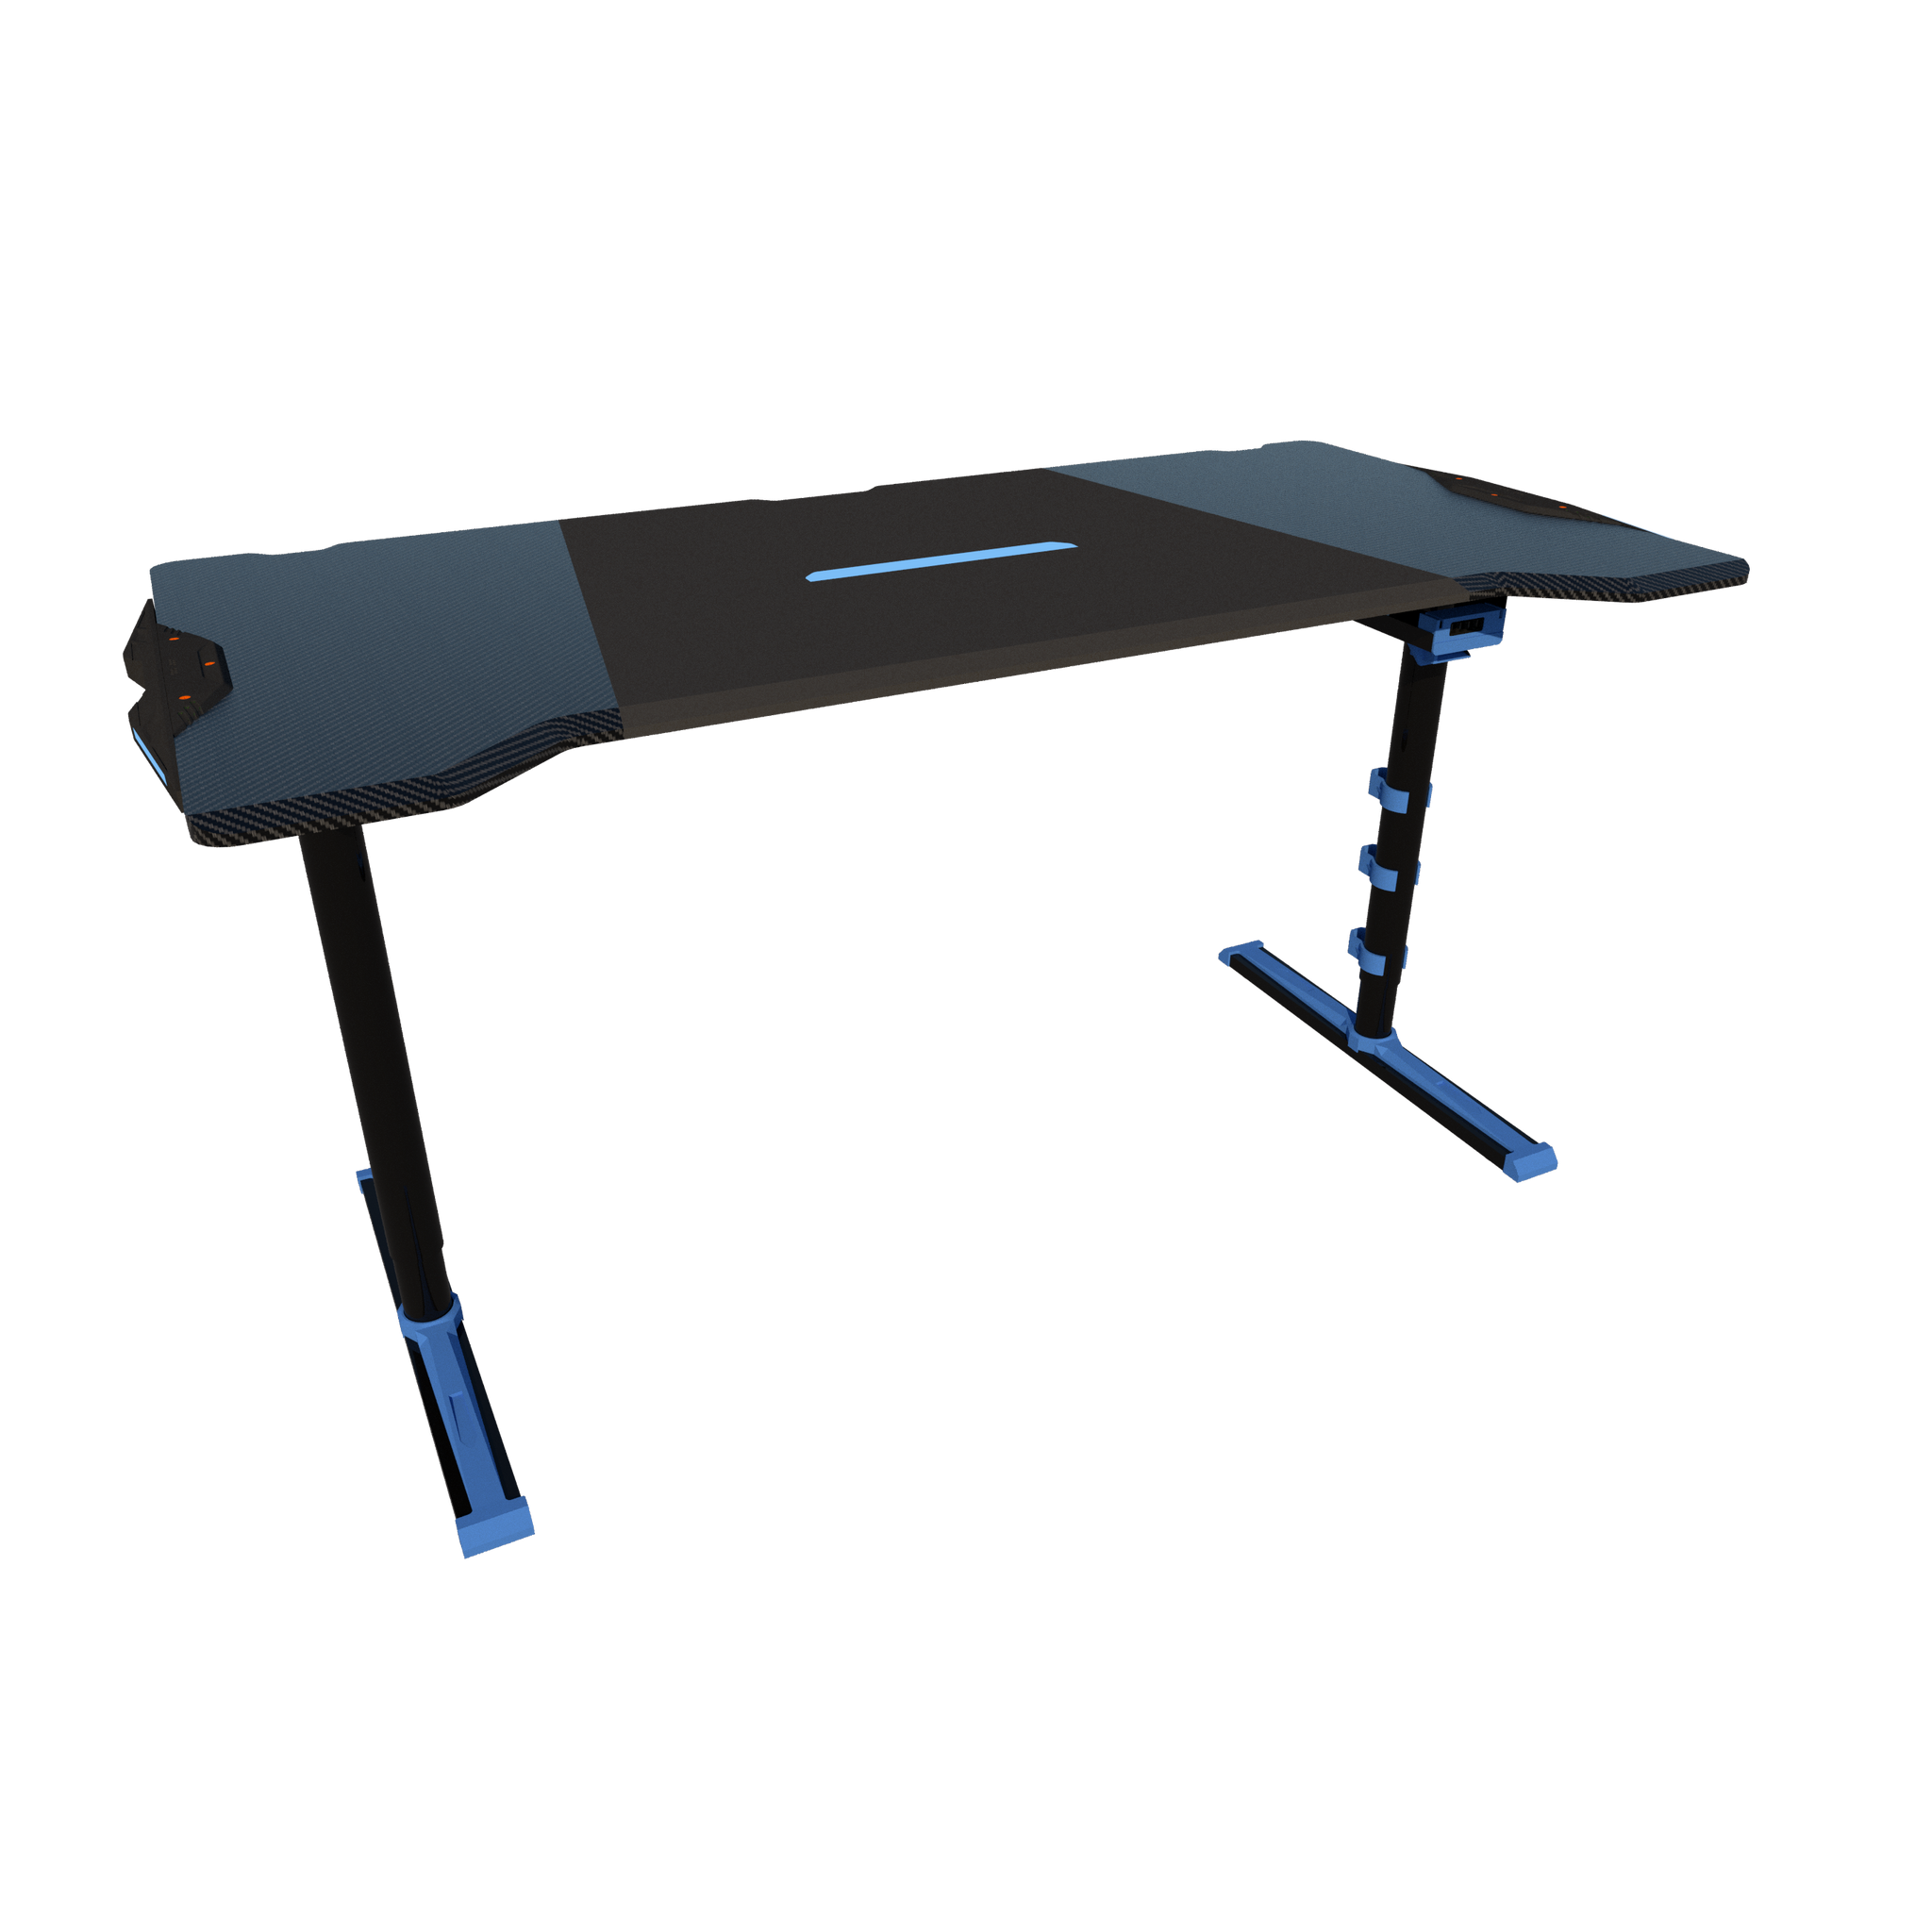 Twisted Minds GDTS-4F RGB Gaming Desk - Black/Blue